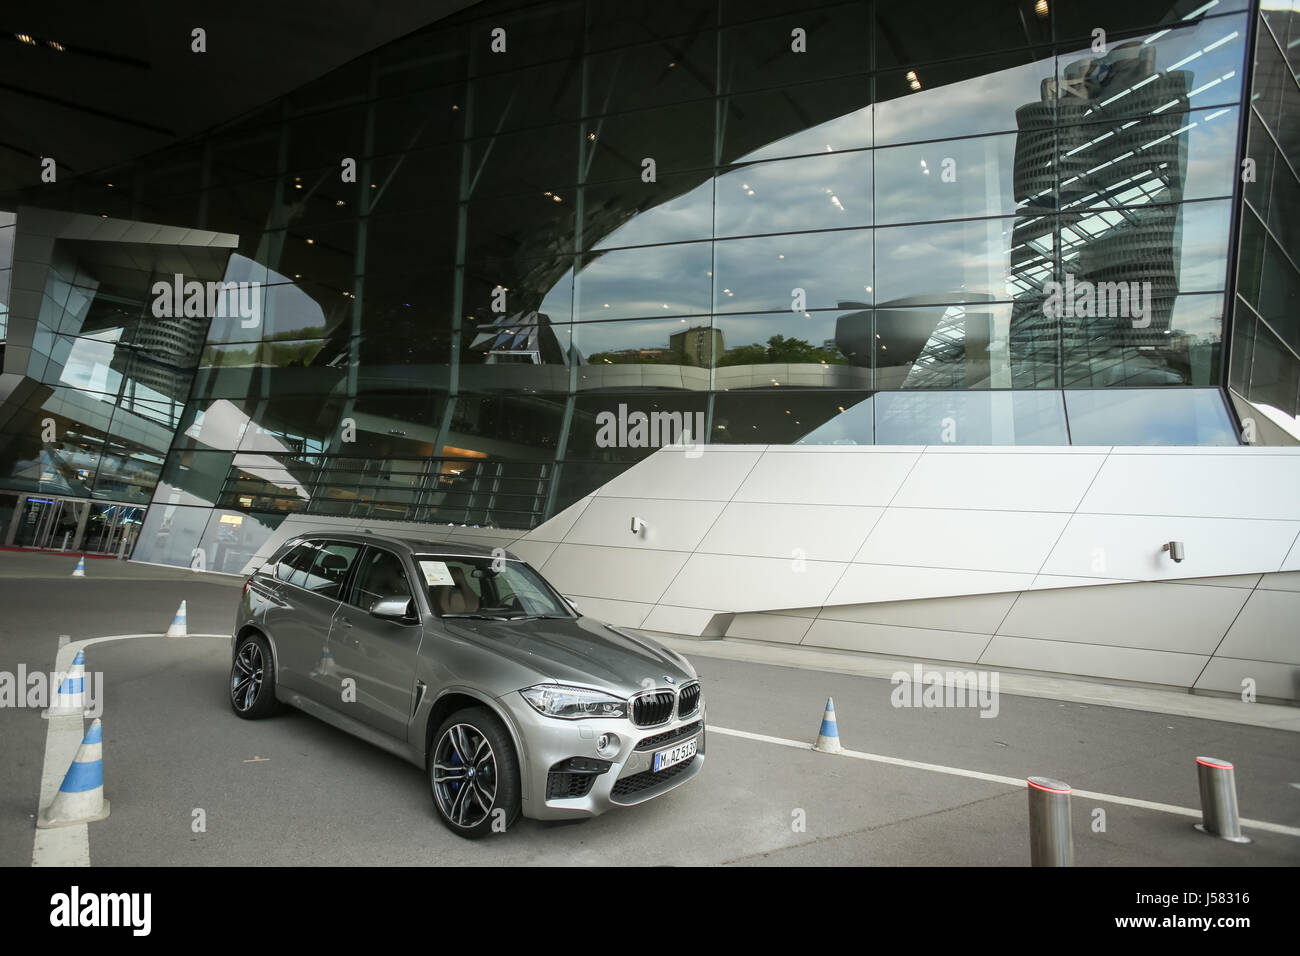 MUNICH, GERMANY - MAY 6, 2017 : A view of the BMW X5 SUV automobile exhibited in front of the BMW Welt exhibition - Stock Image